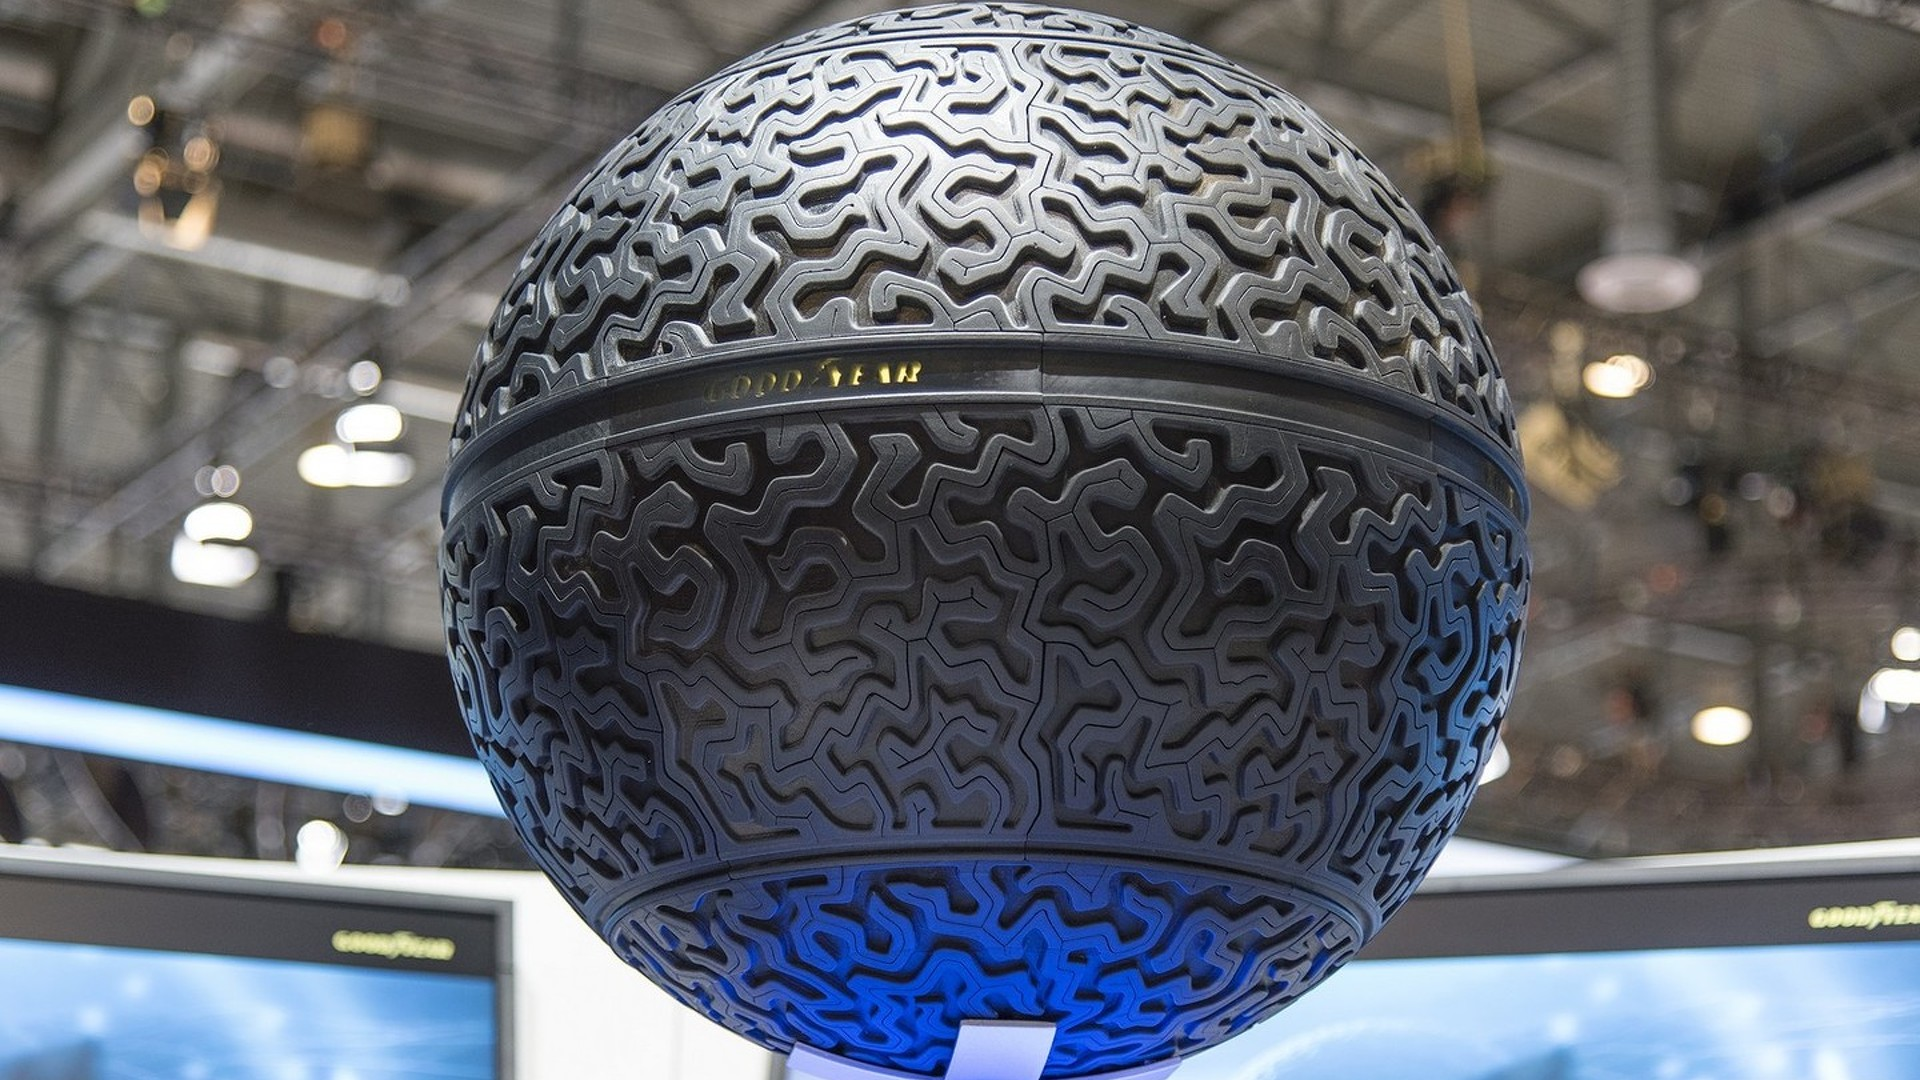 Goodyear Sphere Tire